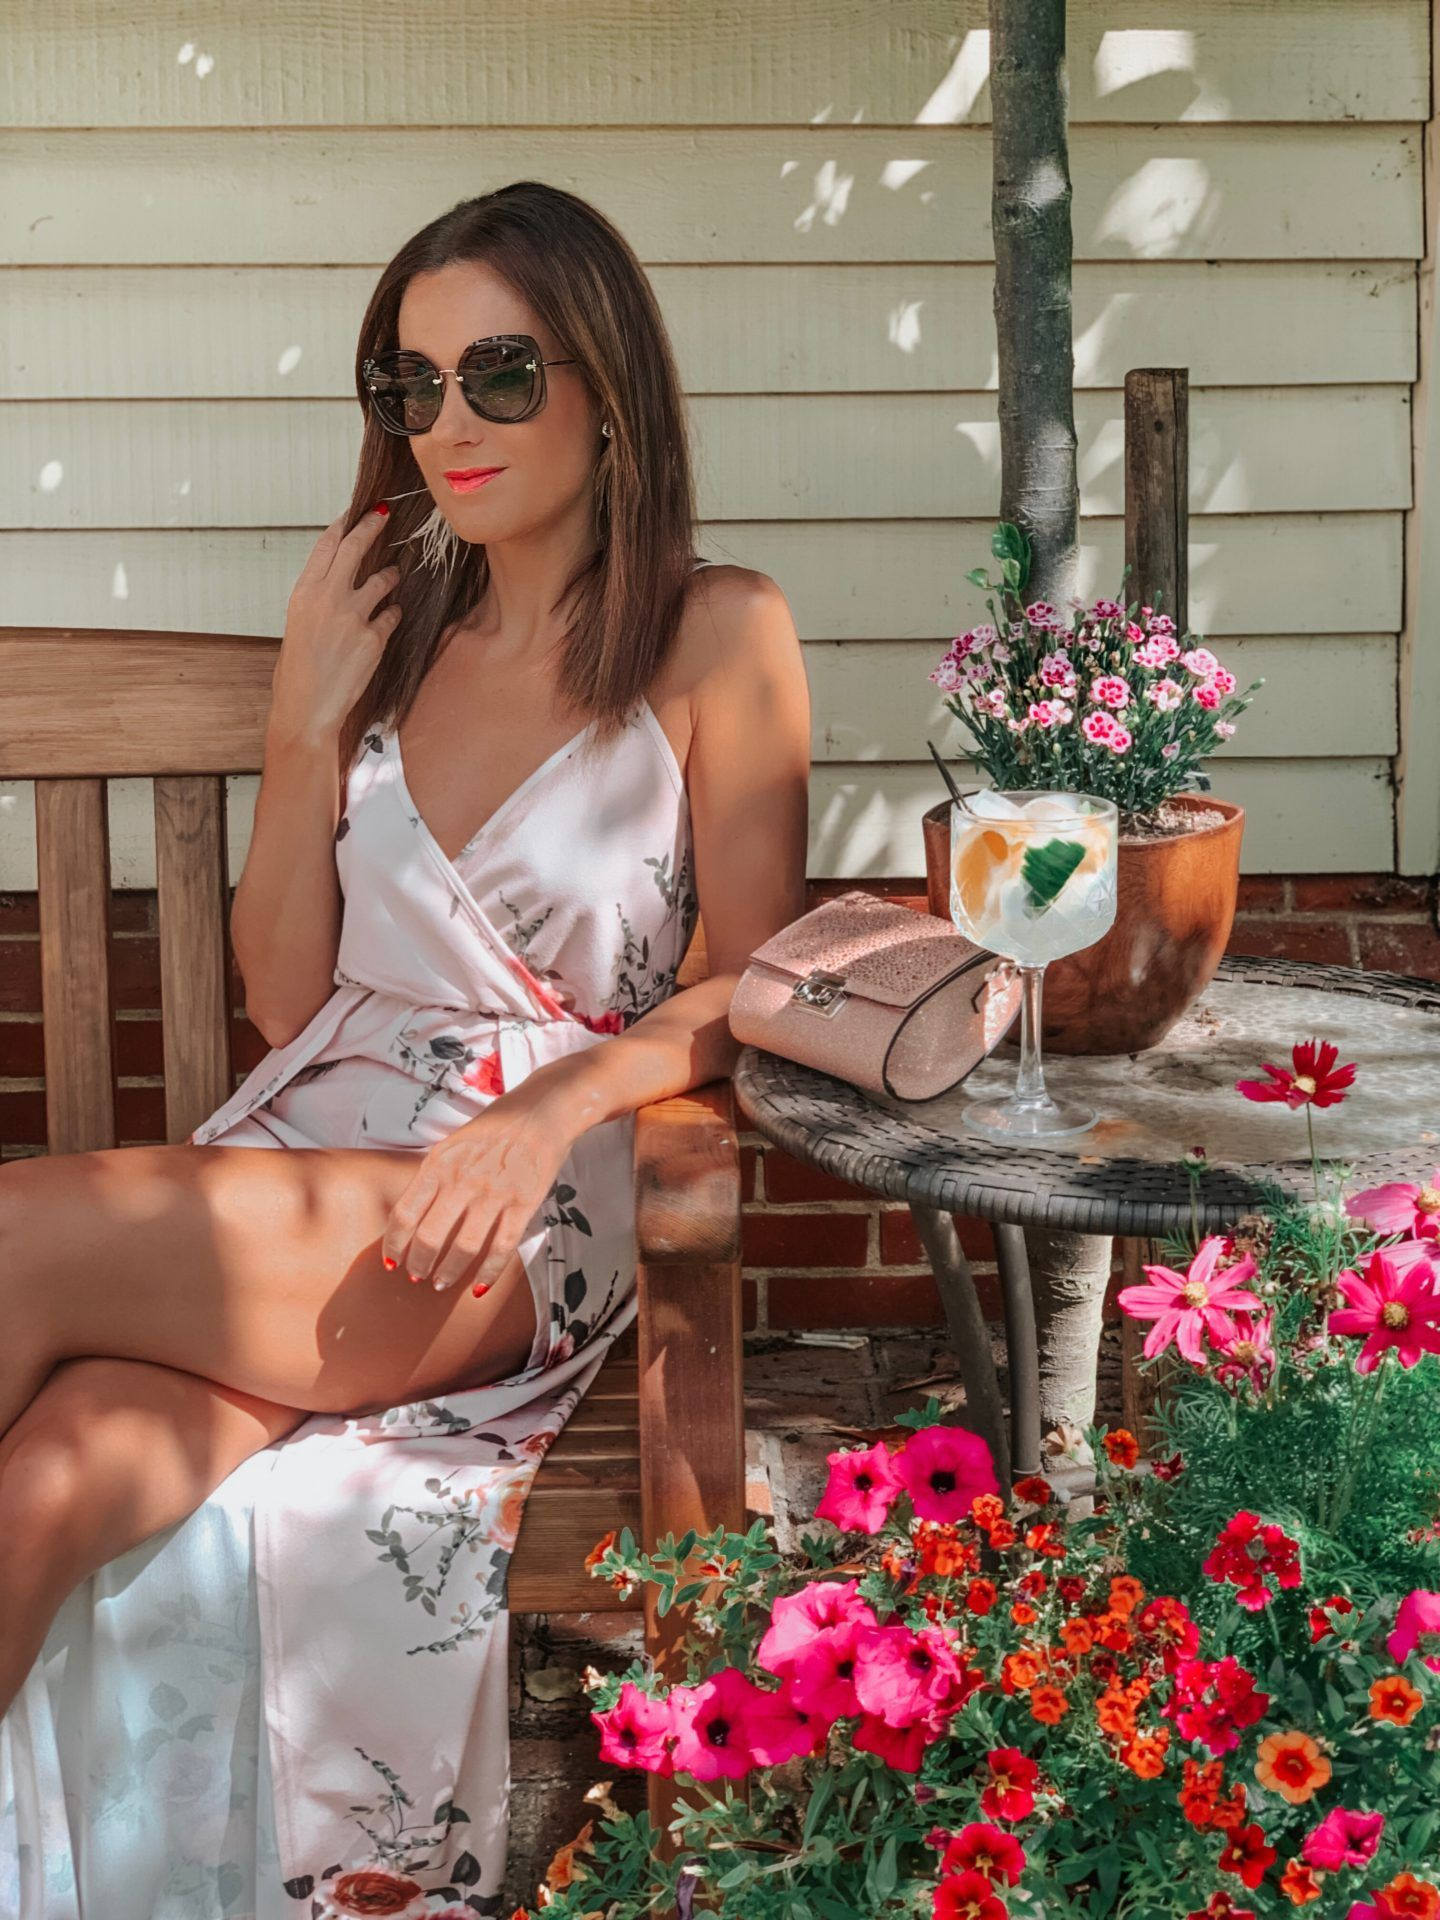 Elegant Duchess Boutique Sleeveless Flower Print Playsuit | Elegant Duchess Boutique Chic Heart shaped Straw Bag | Miu Miu sunglasses | New Look Crystal embellished clutch bag | Ted Baker Court Shoes